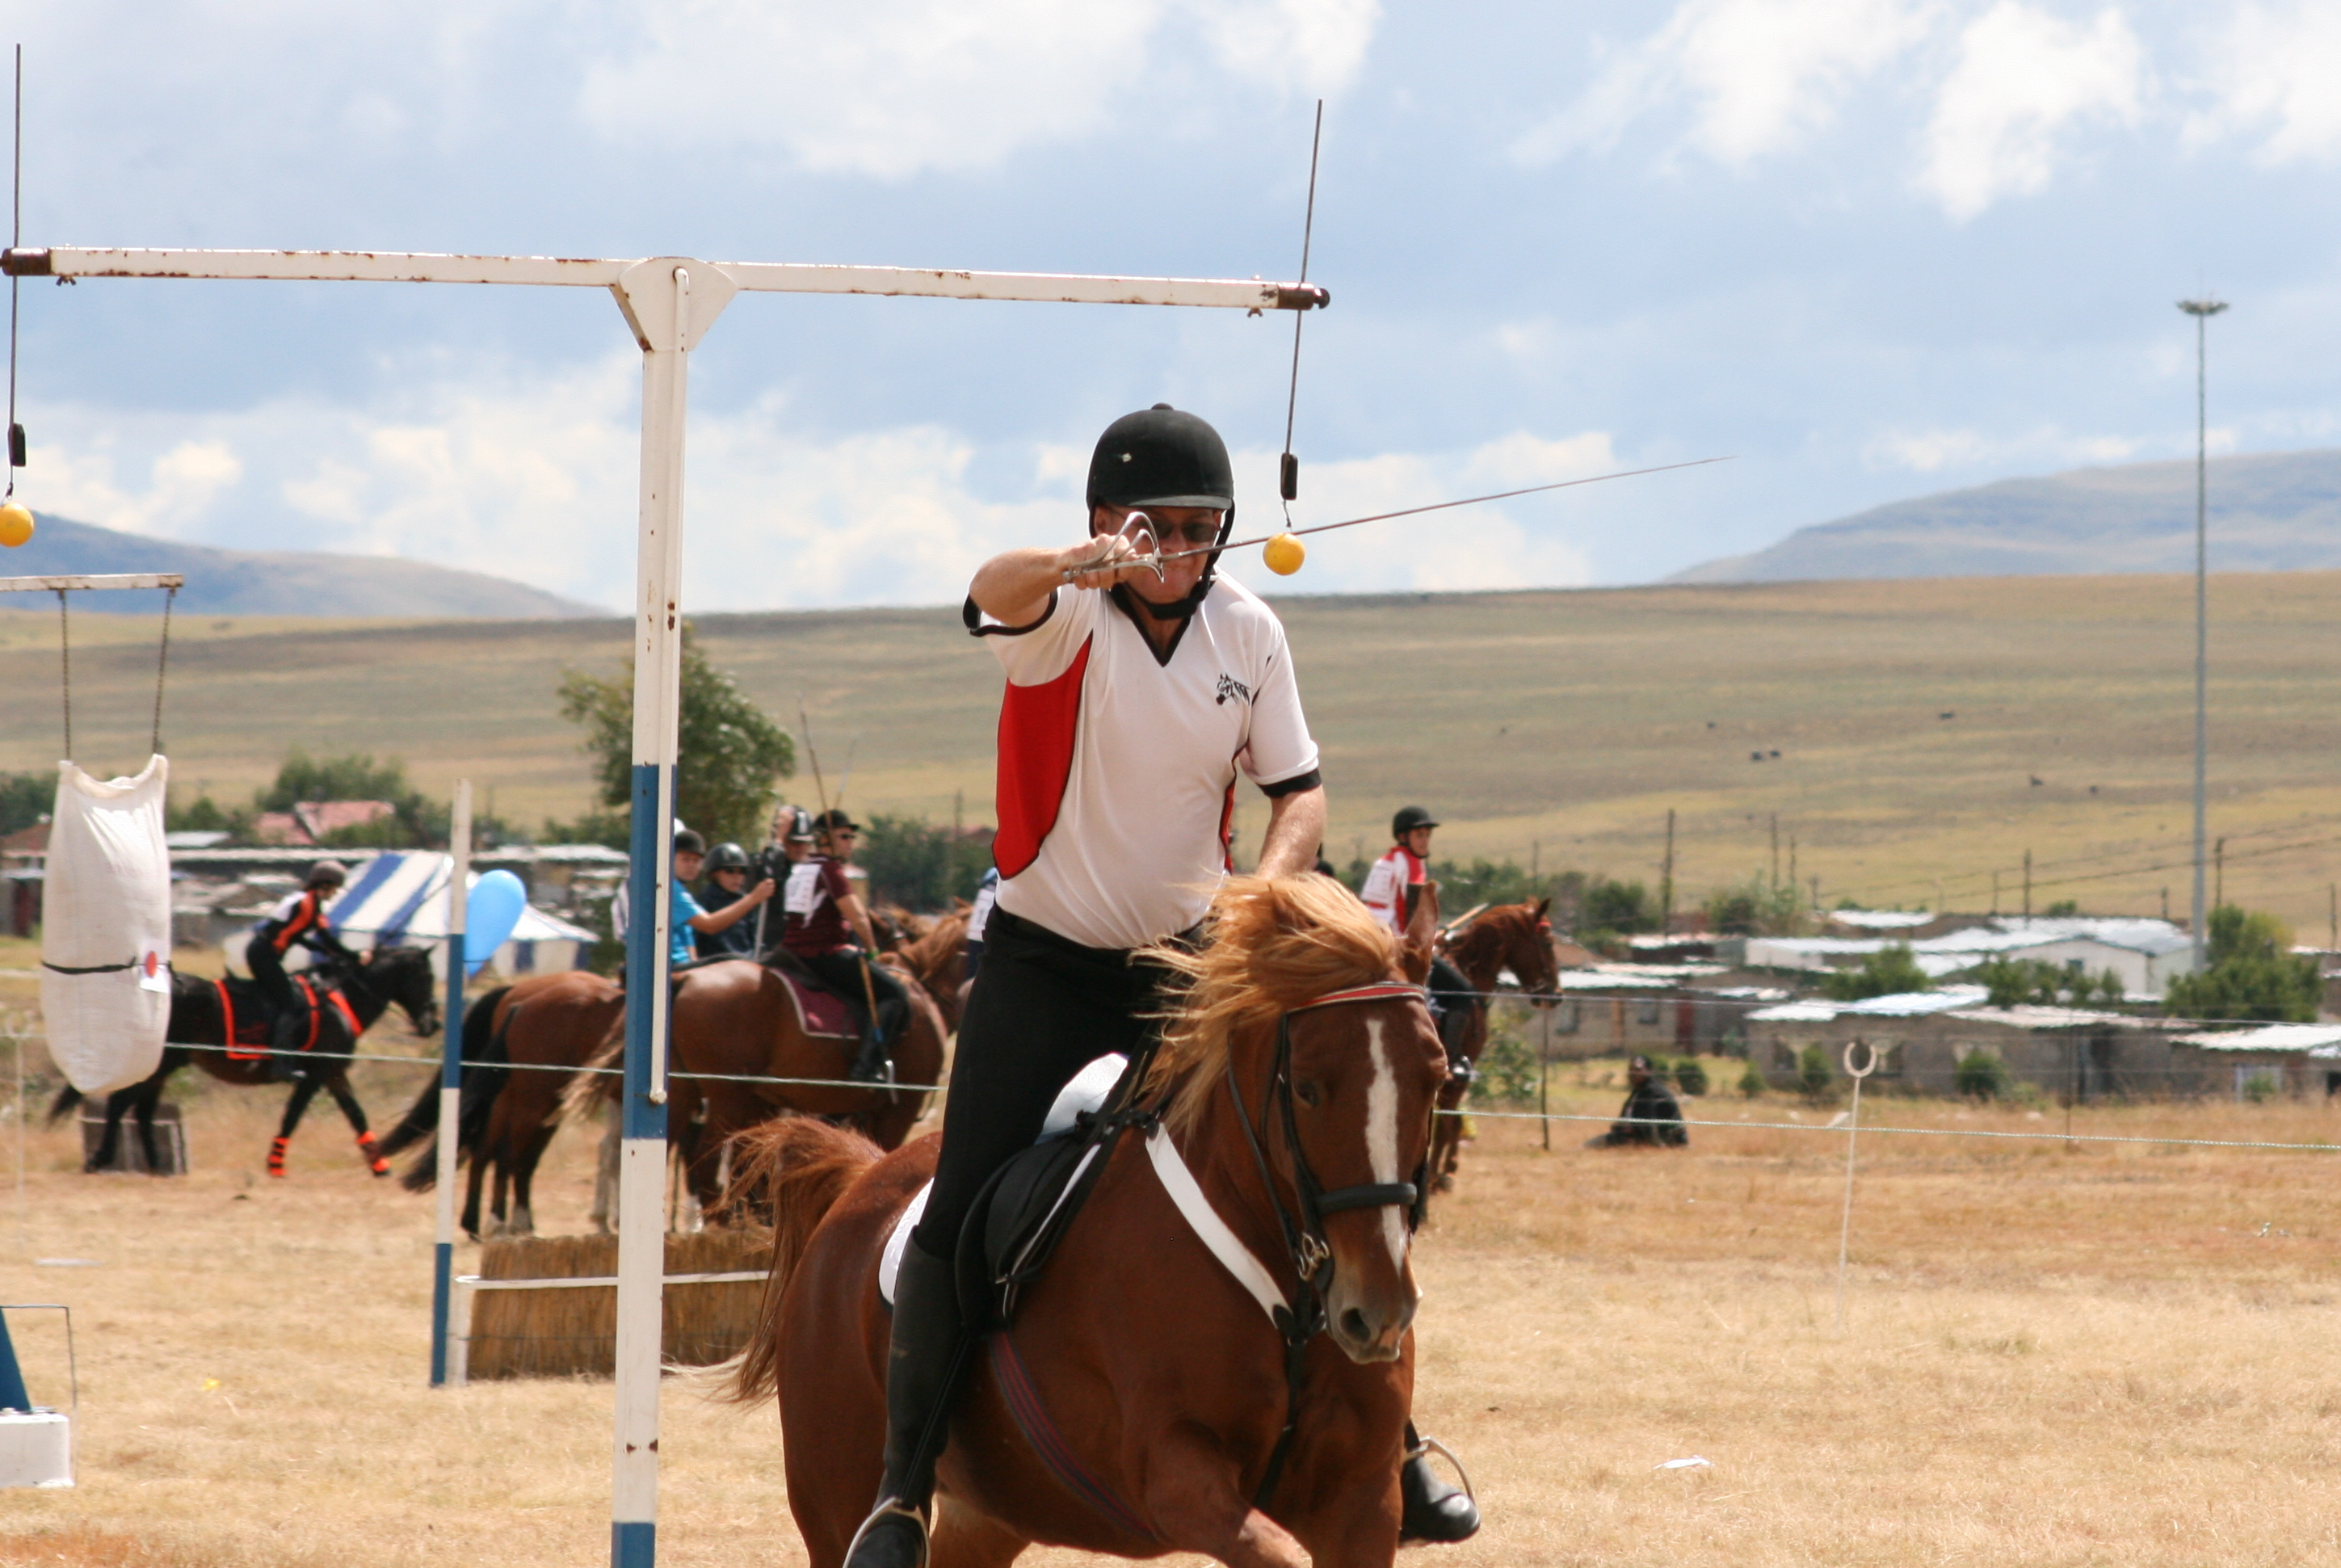 & Tent Pegging South Africa